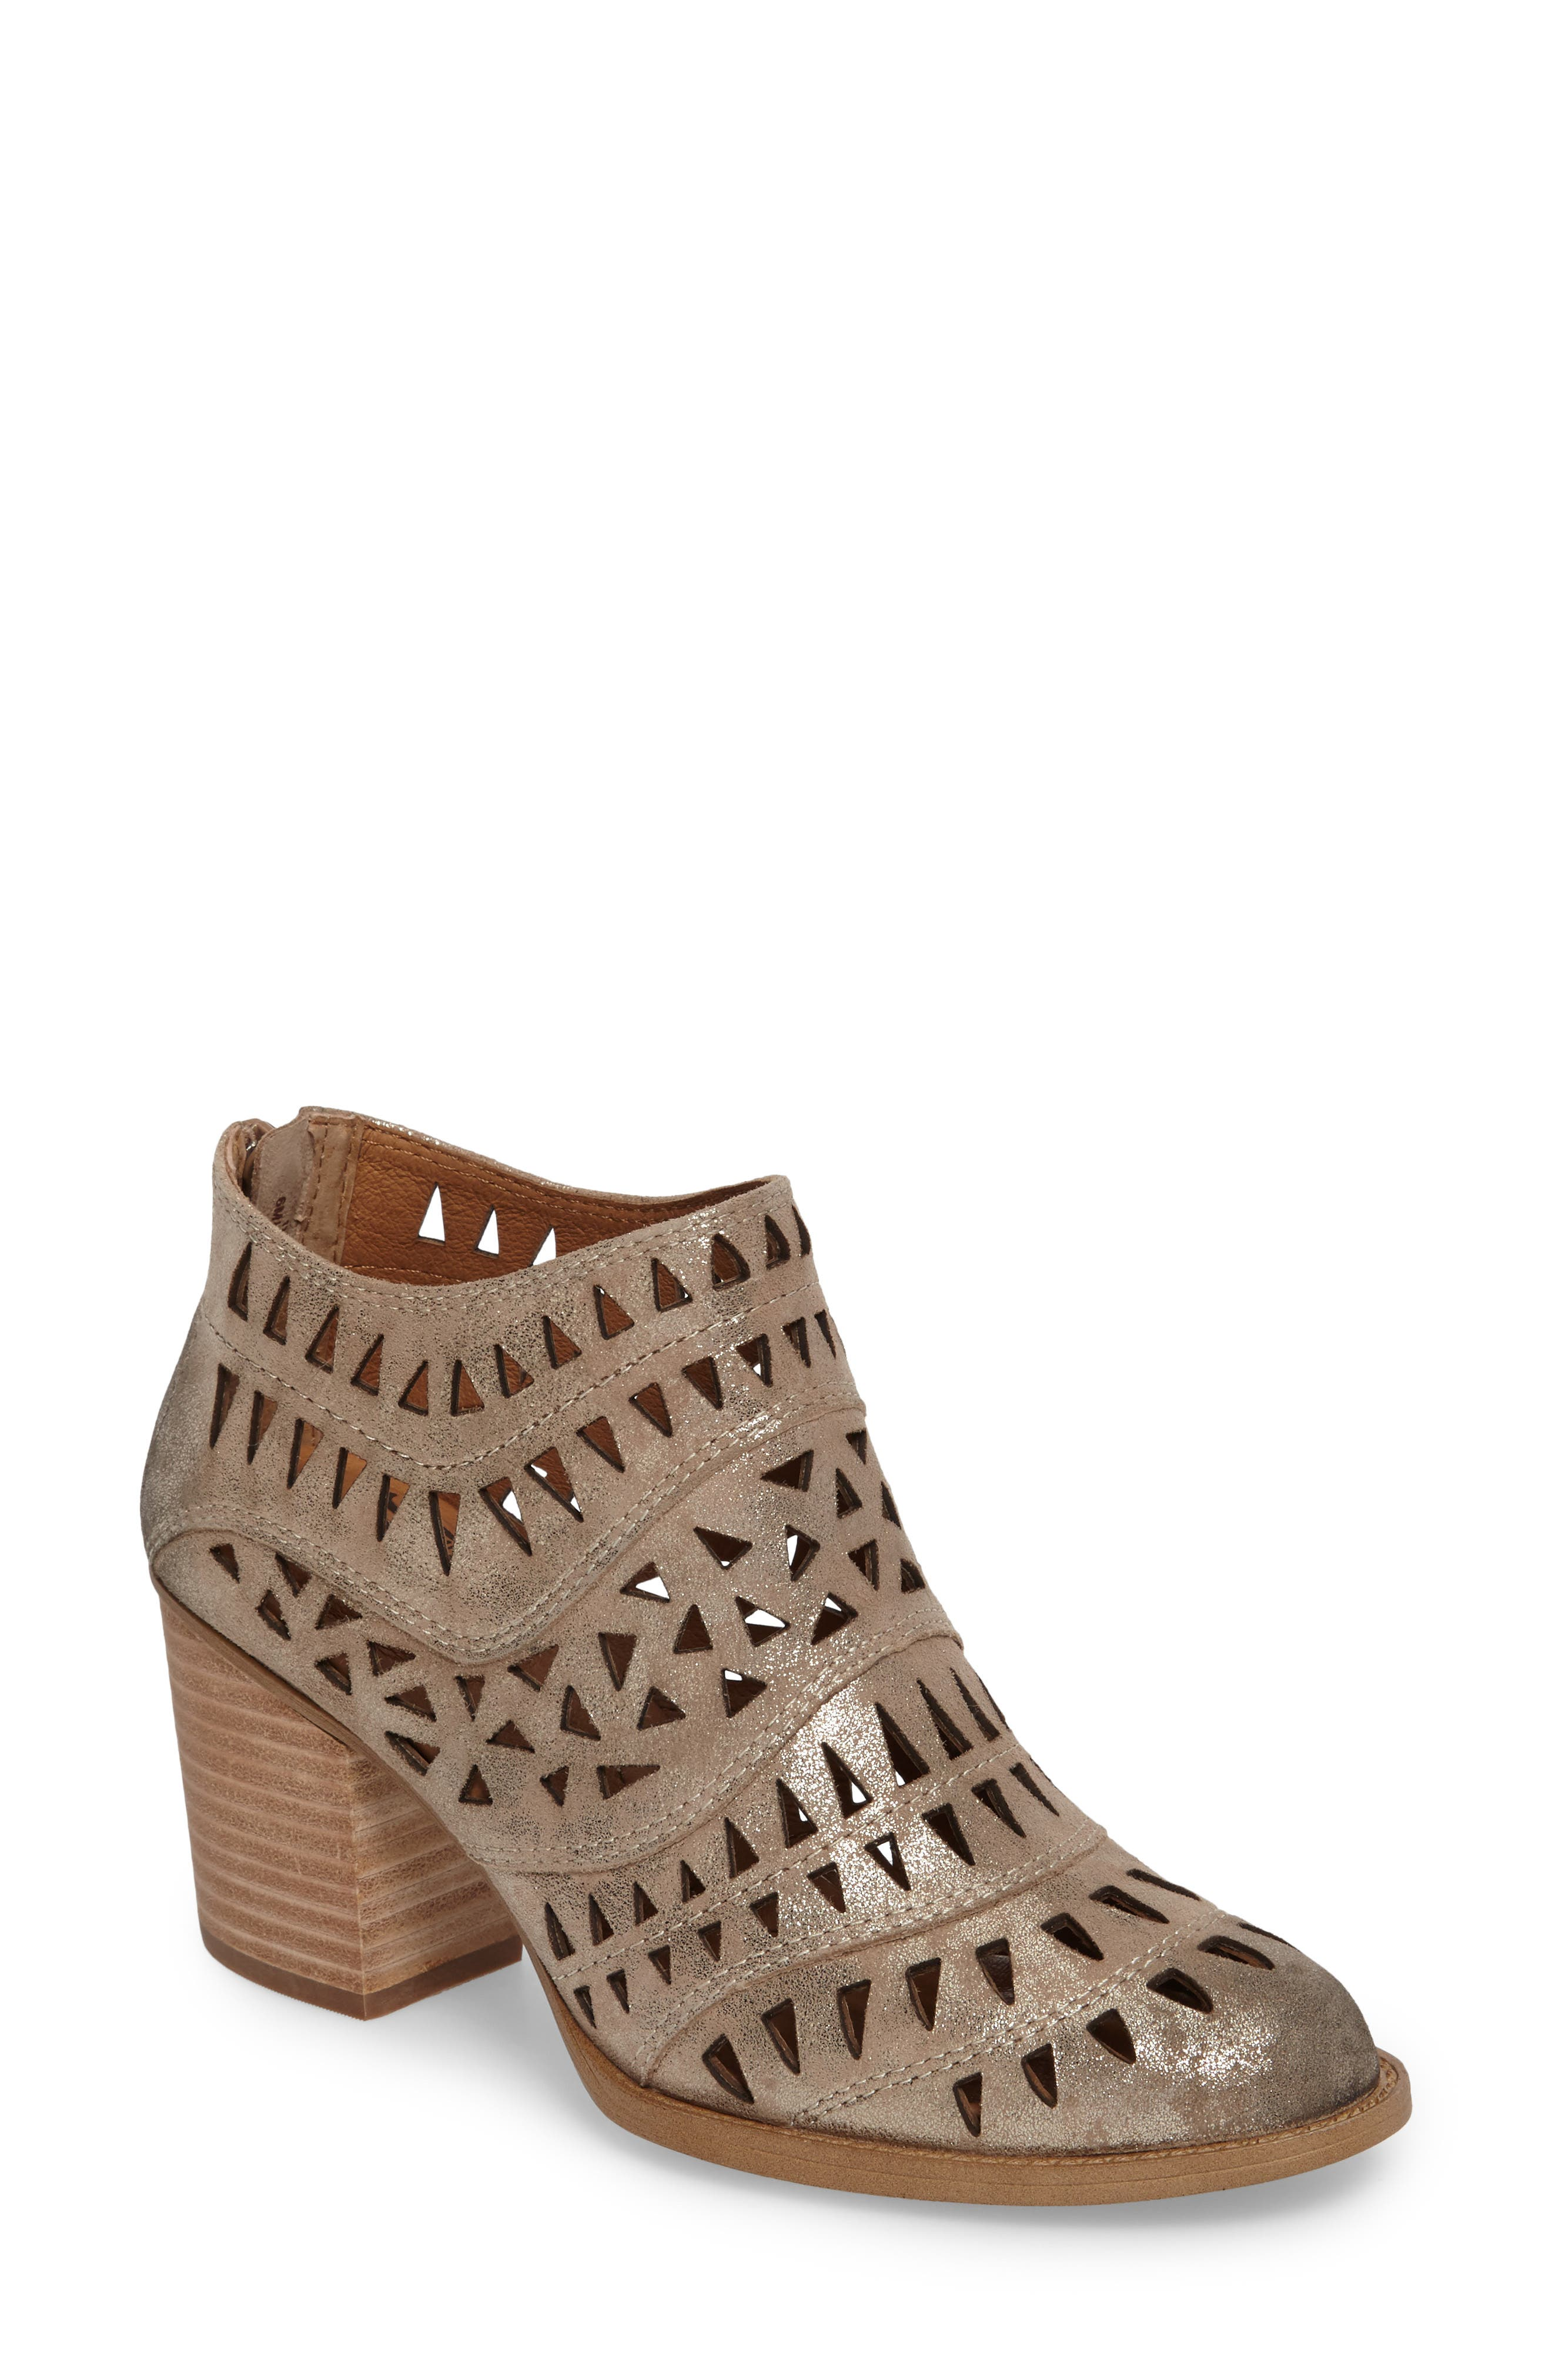 Westwood Laser Cut Bootie,                         Main,                         color, Anthracite Distressed Foil